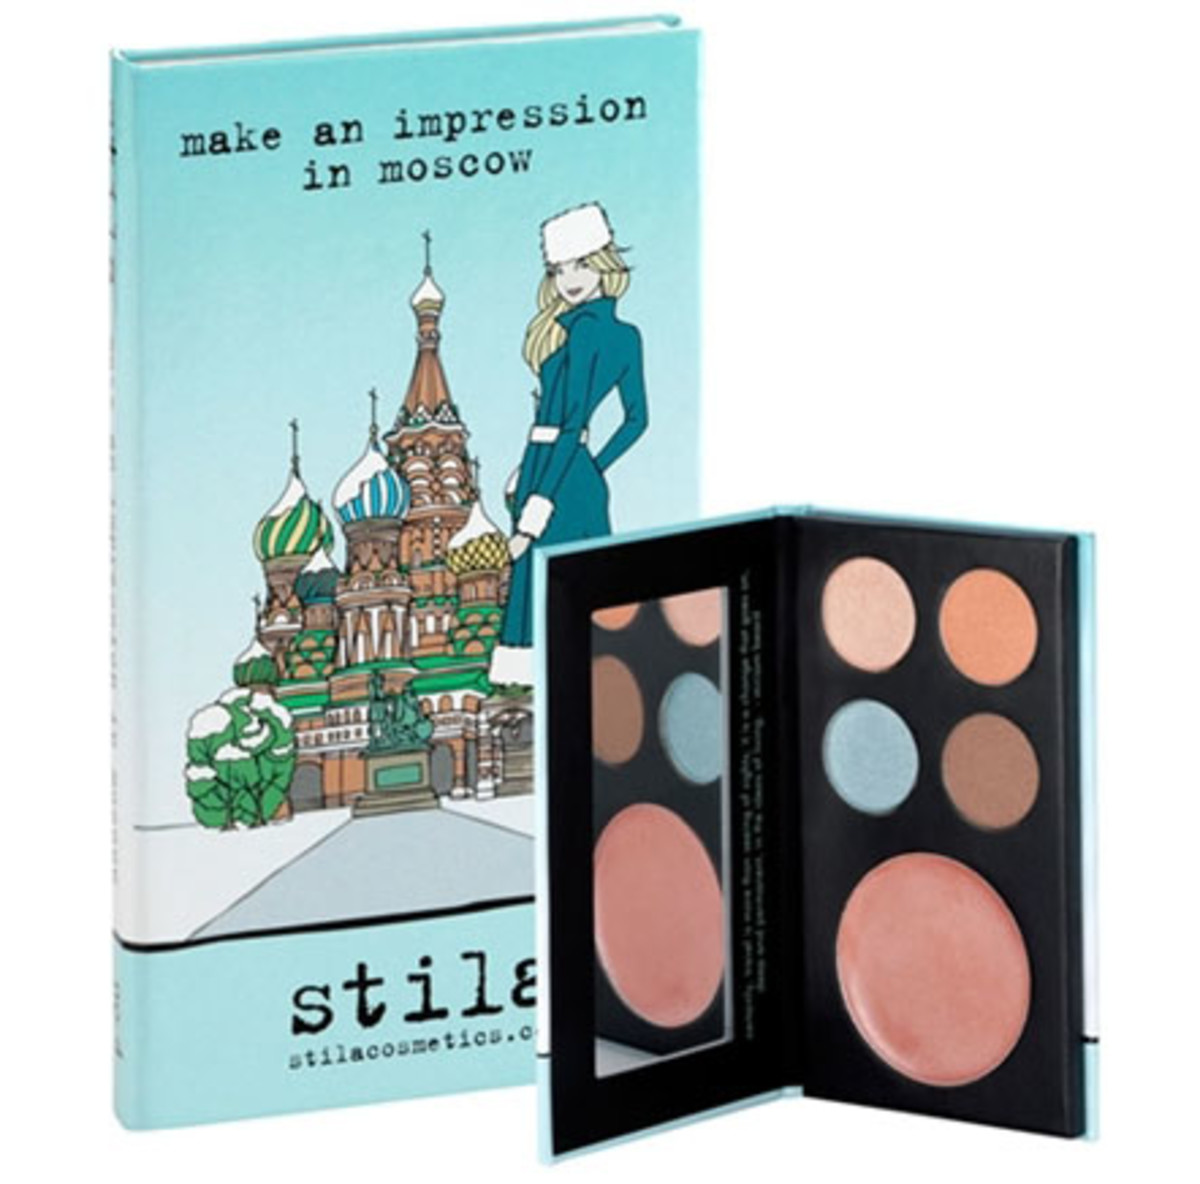 Stila-Make-an-Impression-in-Moscow